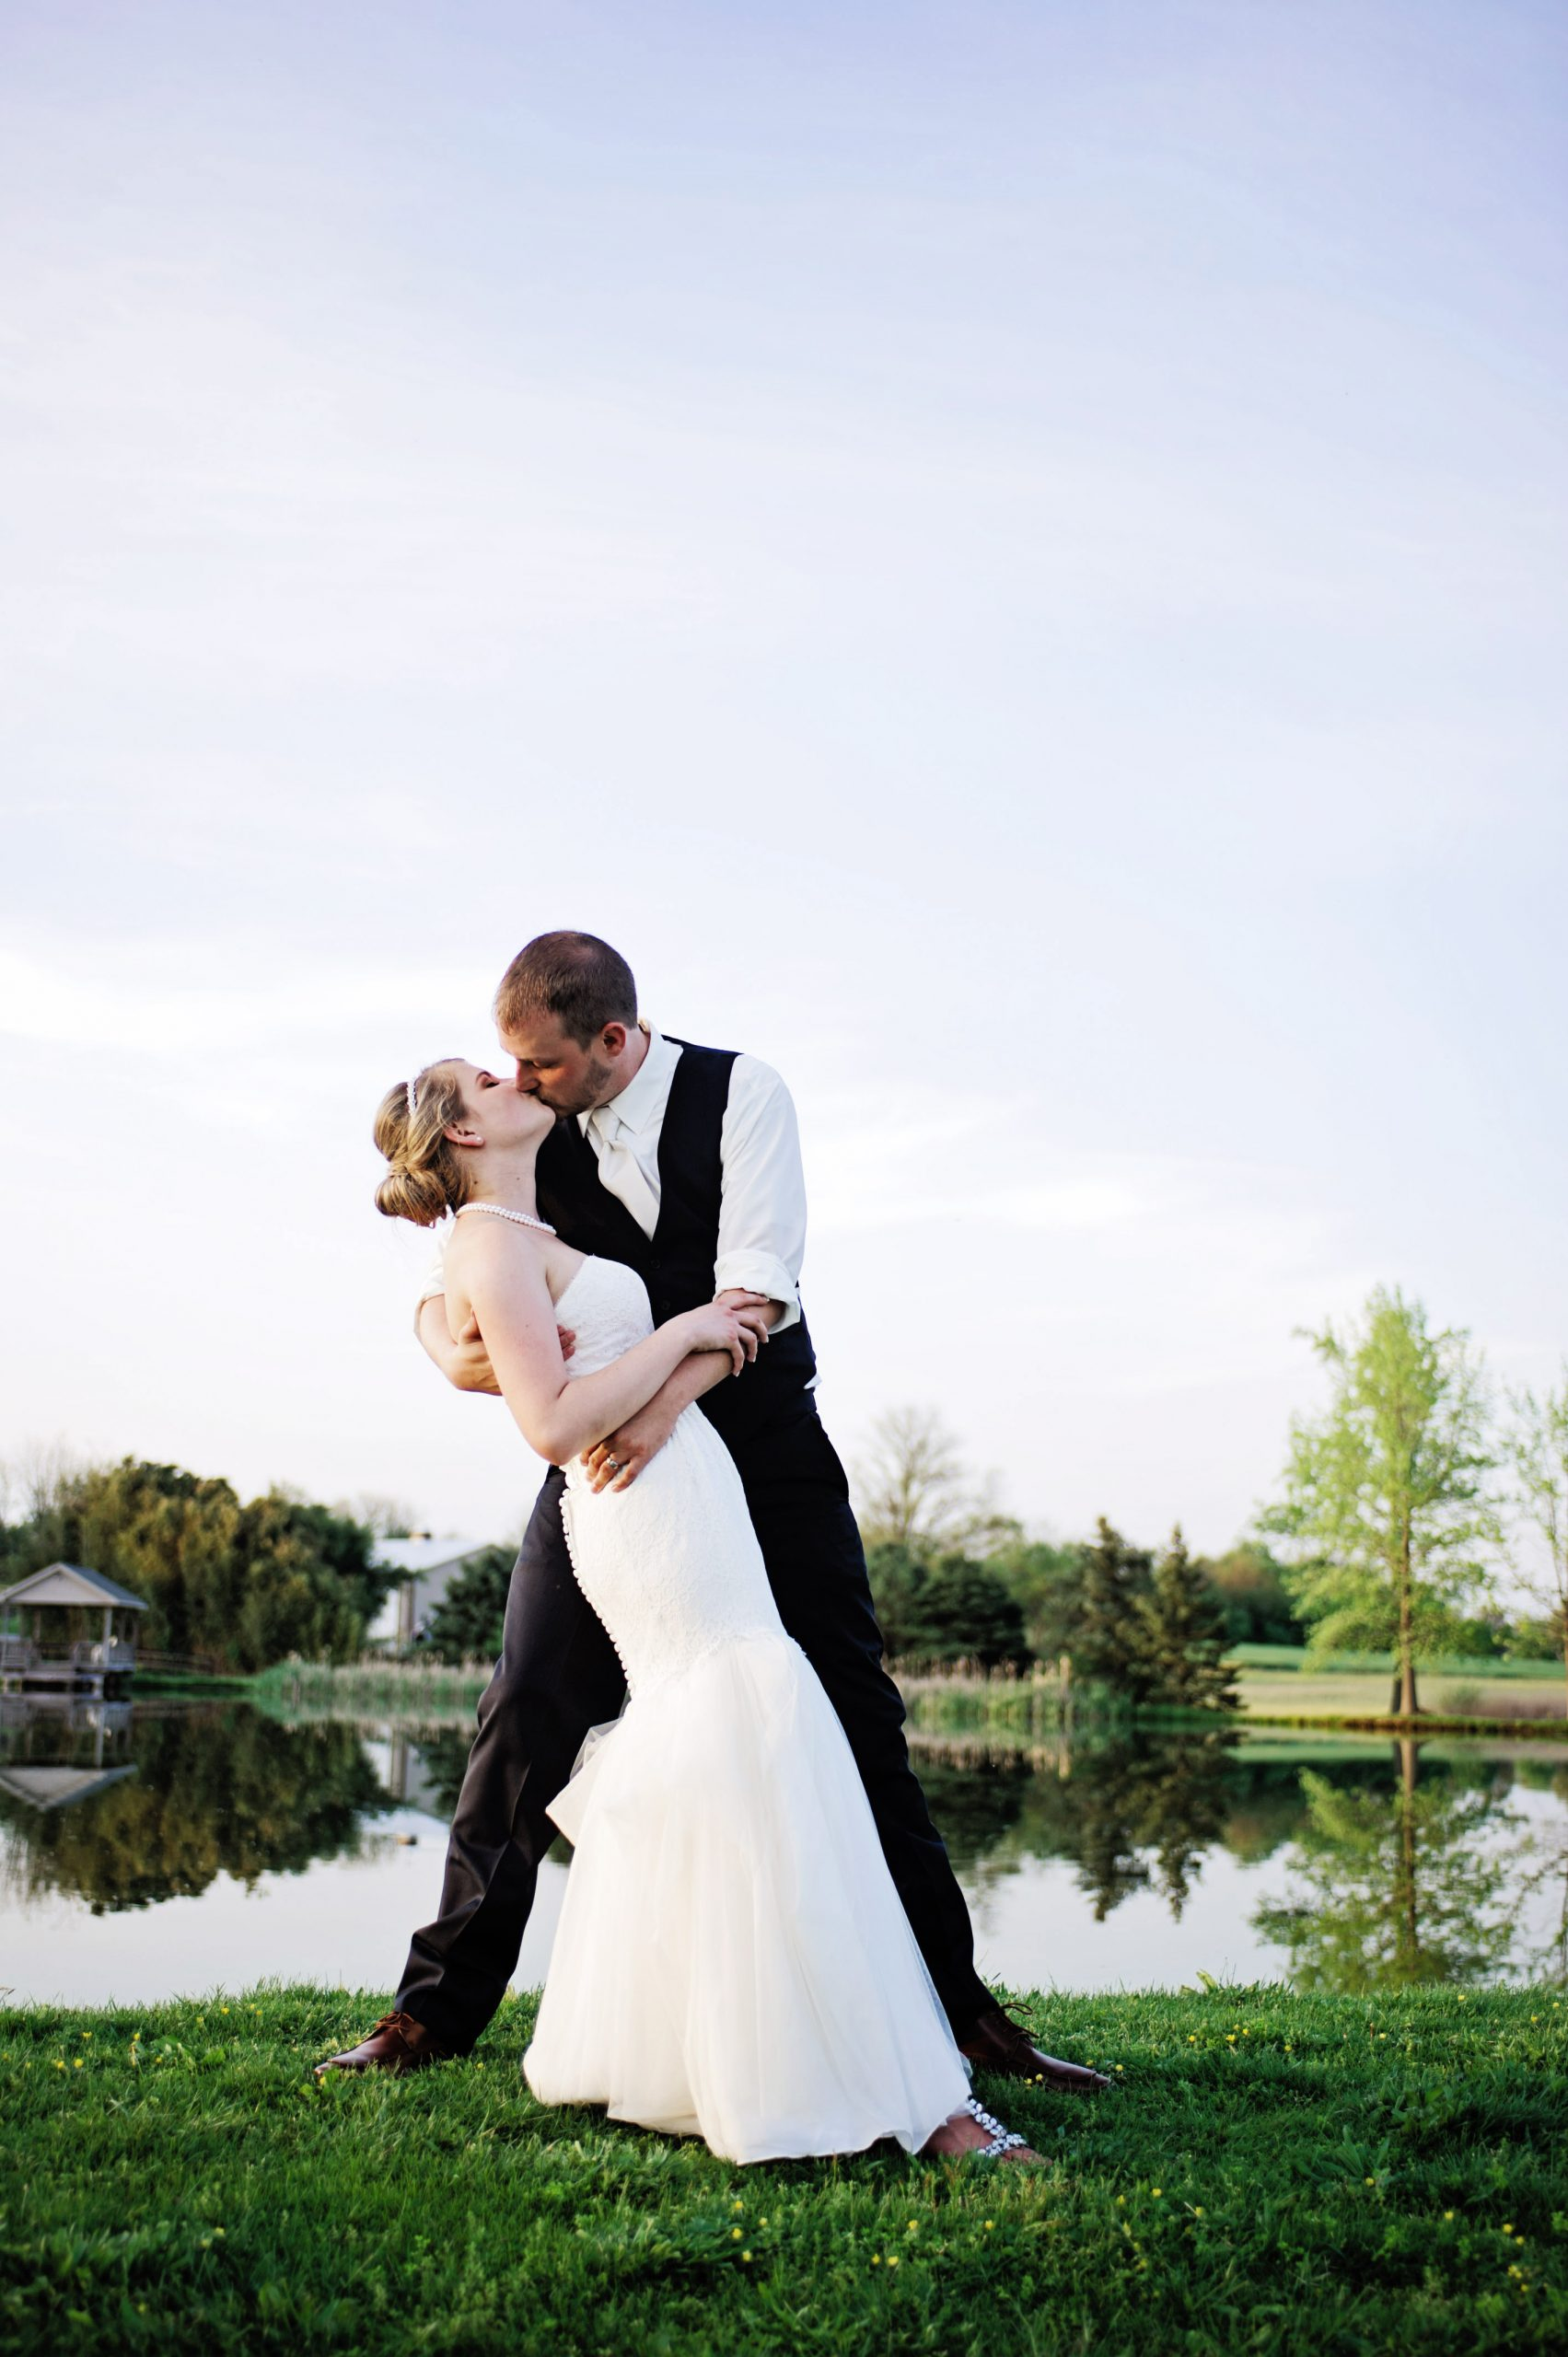 Overlooking the lake at Lakeview Farms in York, PA, Kady and Ricky romanitically embrace each other with a kiss. Classic in both positioning and love for each other, the two share a forever bond. Featured on Dream Weddings.